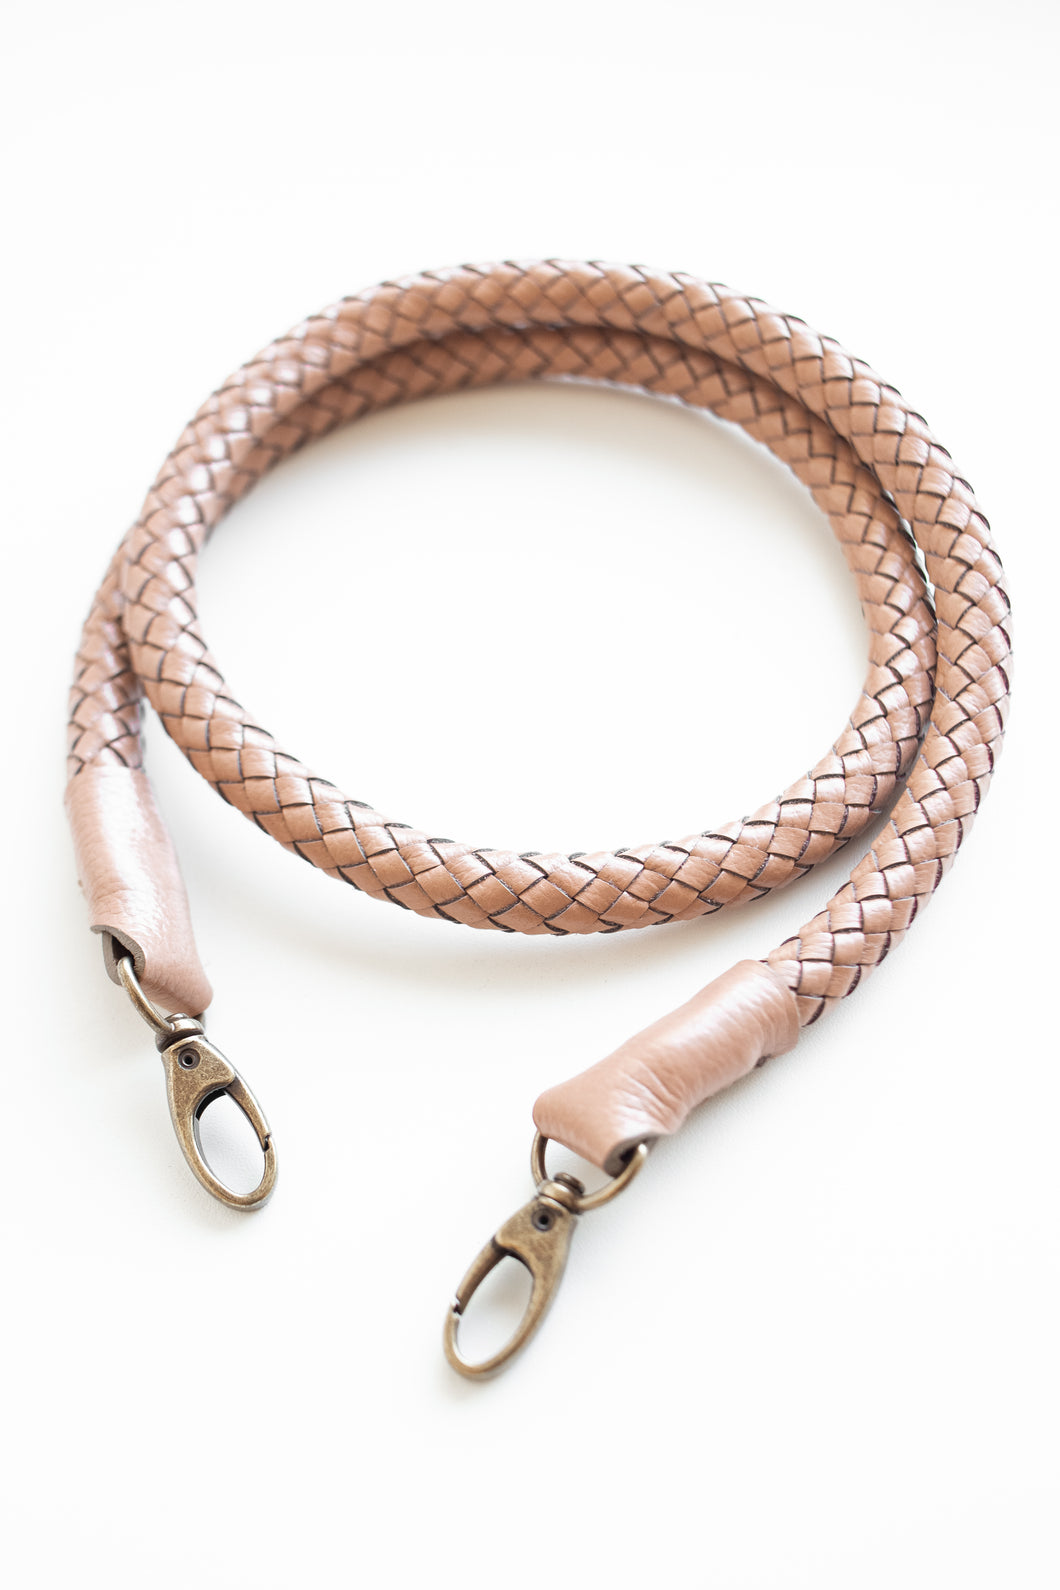 hand-braided leather strap - beige - Volta Atelier